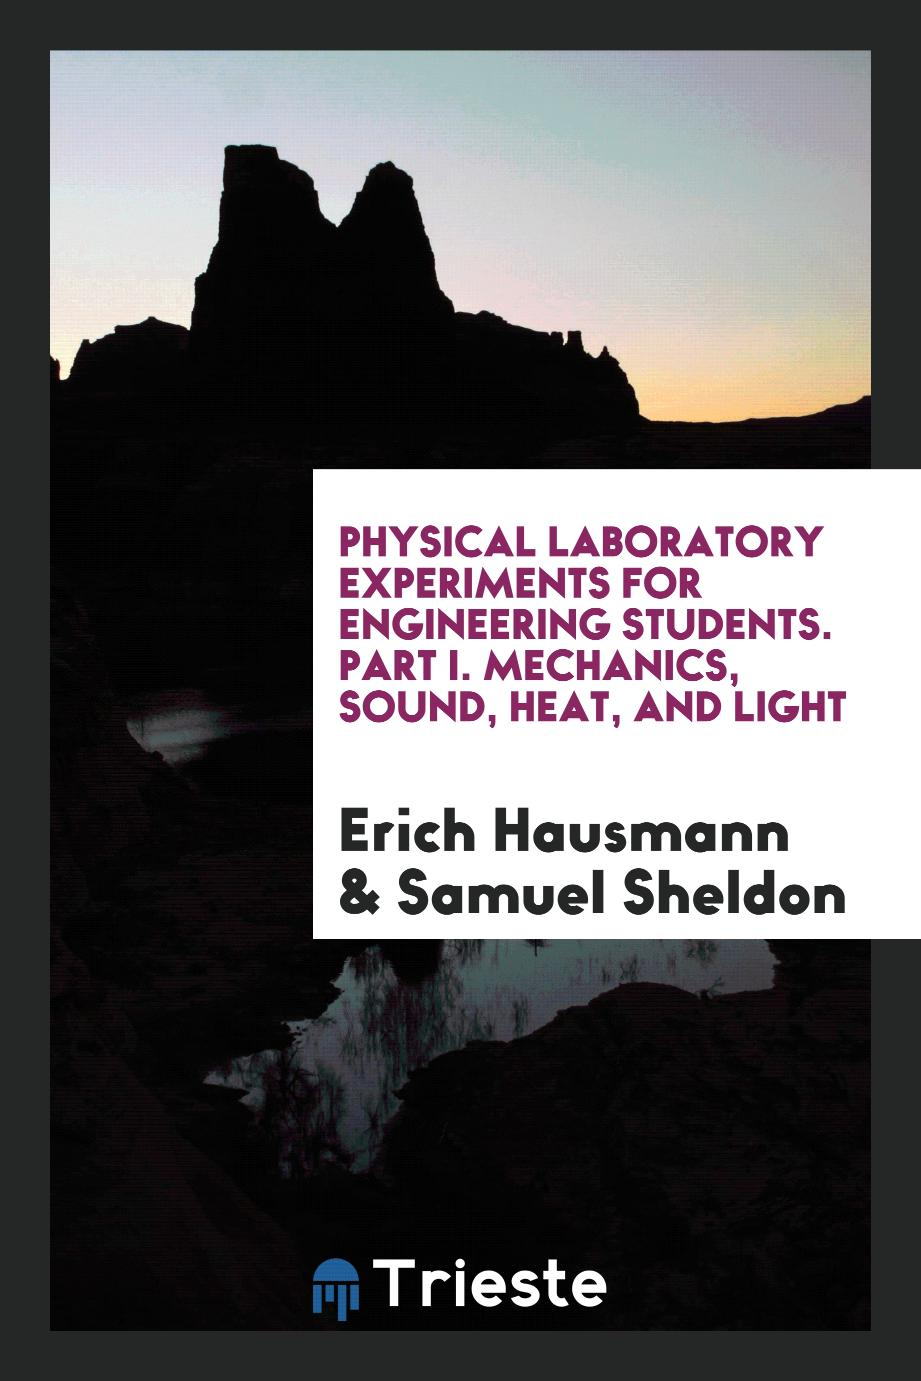 Physical Laboratory Experiments for Engineering Students. Part I. Mechanics, Sound, Heat, and Light